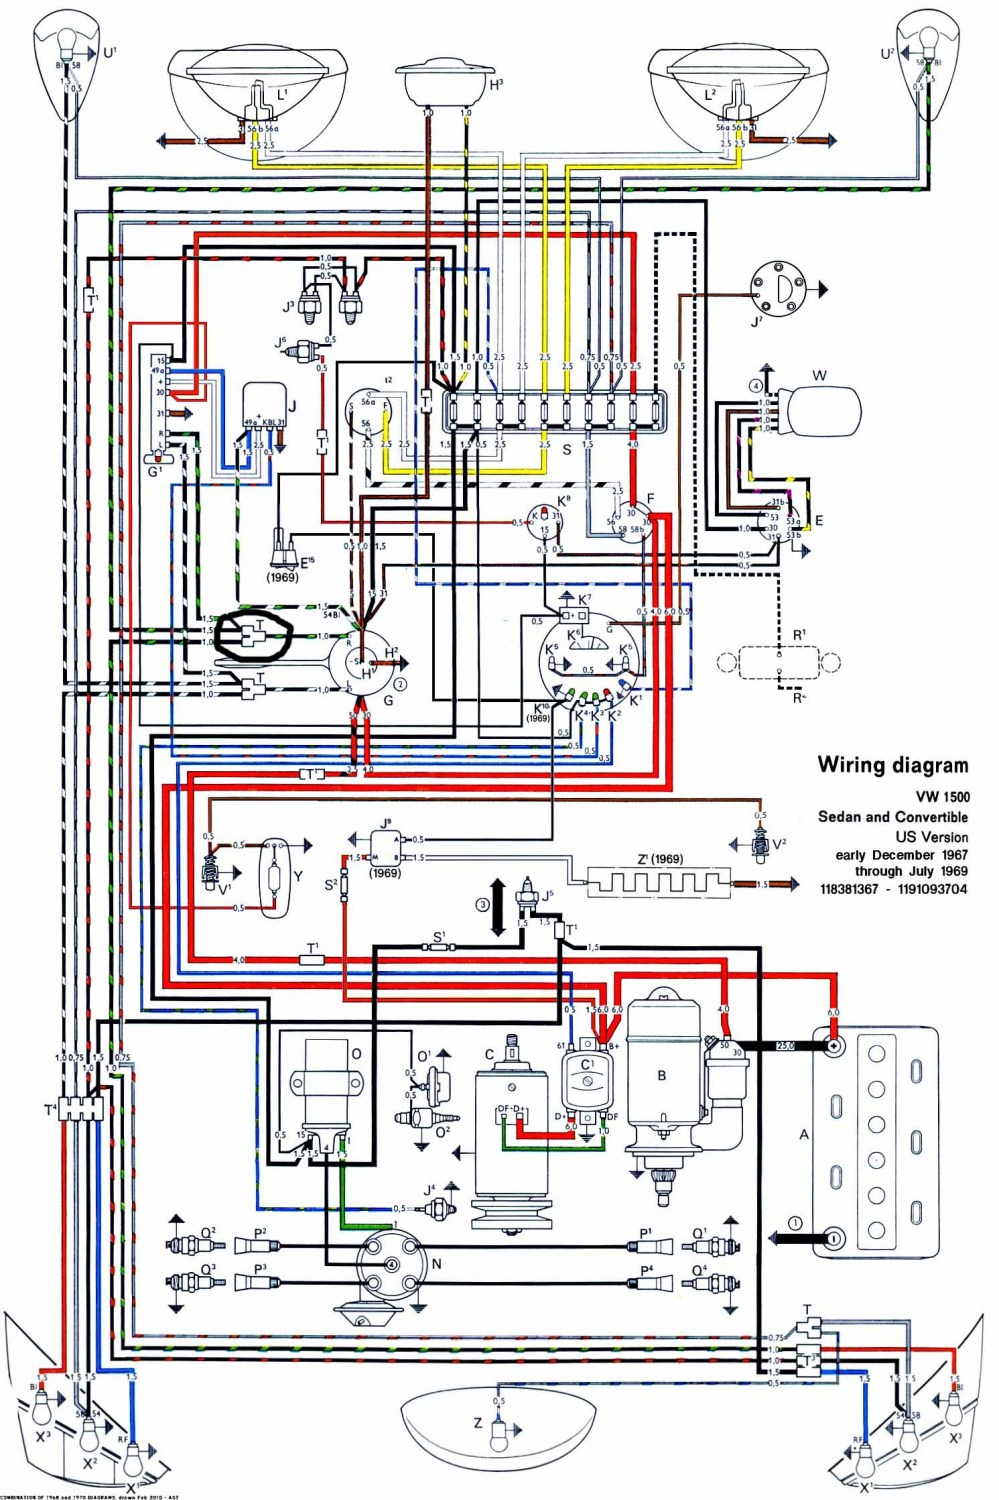 medium resolution of wiring diagram for 1971 vw beetle the wiring diagram 1967 vw bug turn signal wiring diagram